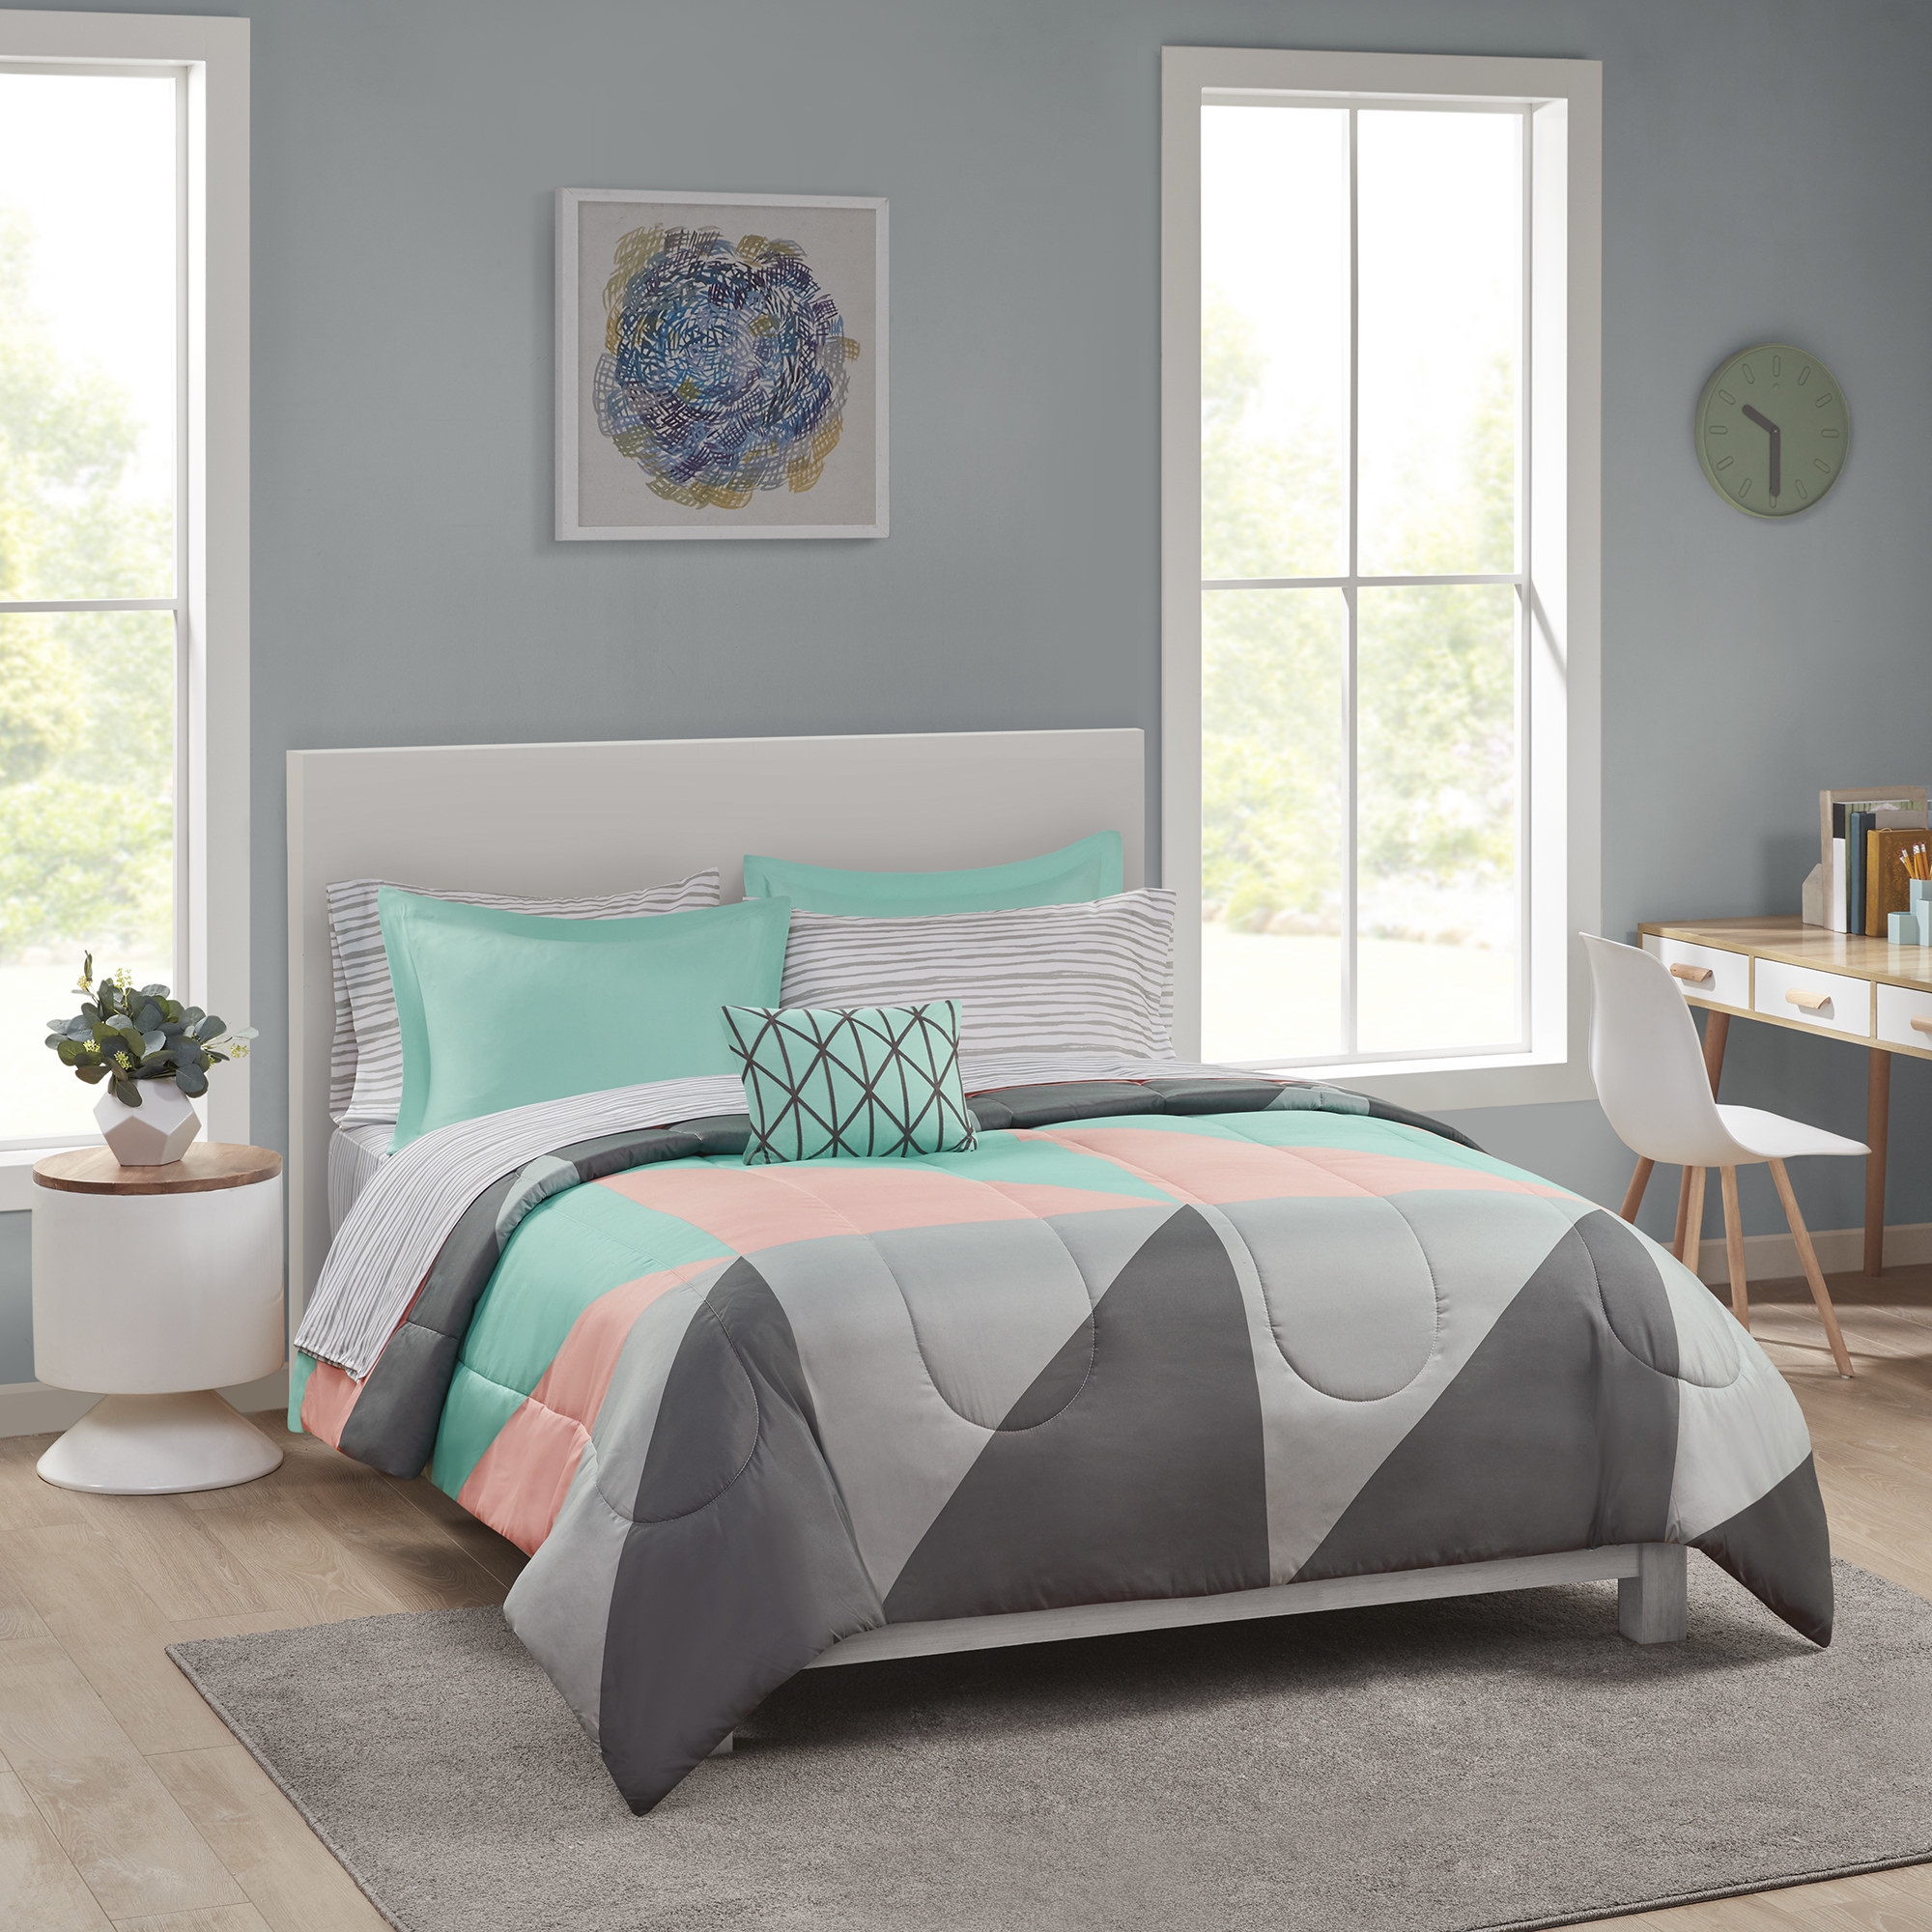 grey pink and teal comforter and bedding set on a bed in a bedroom